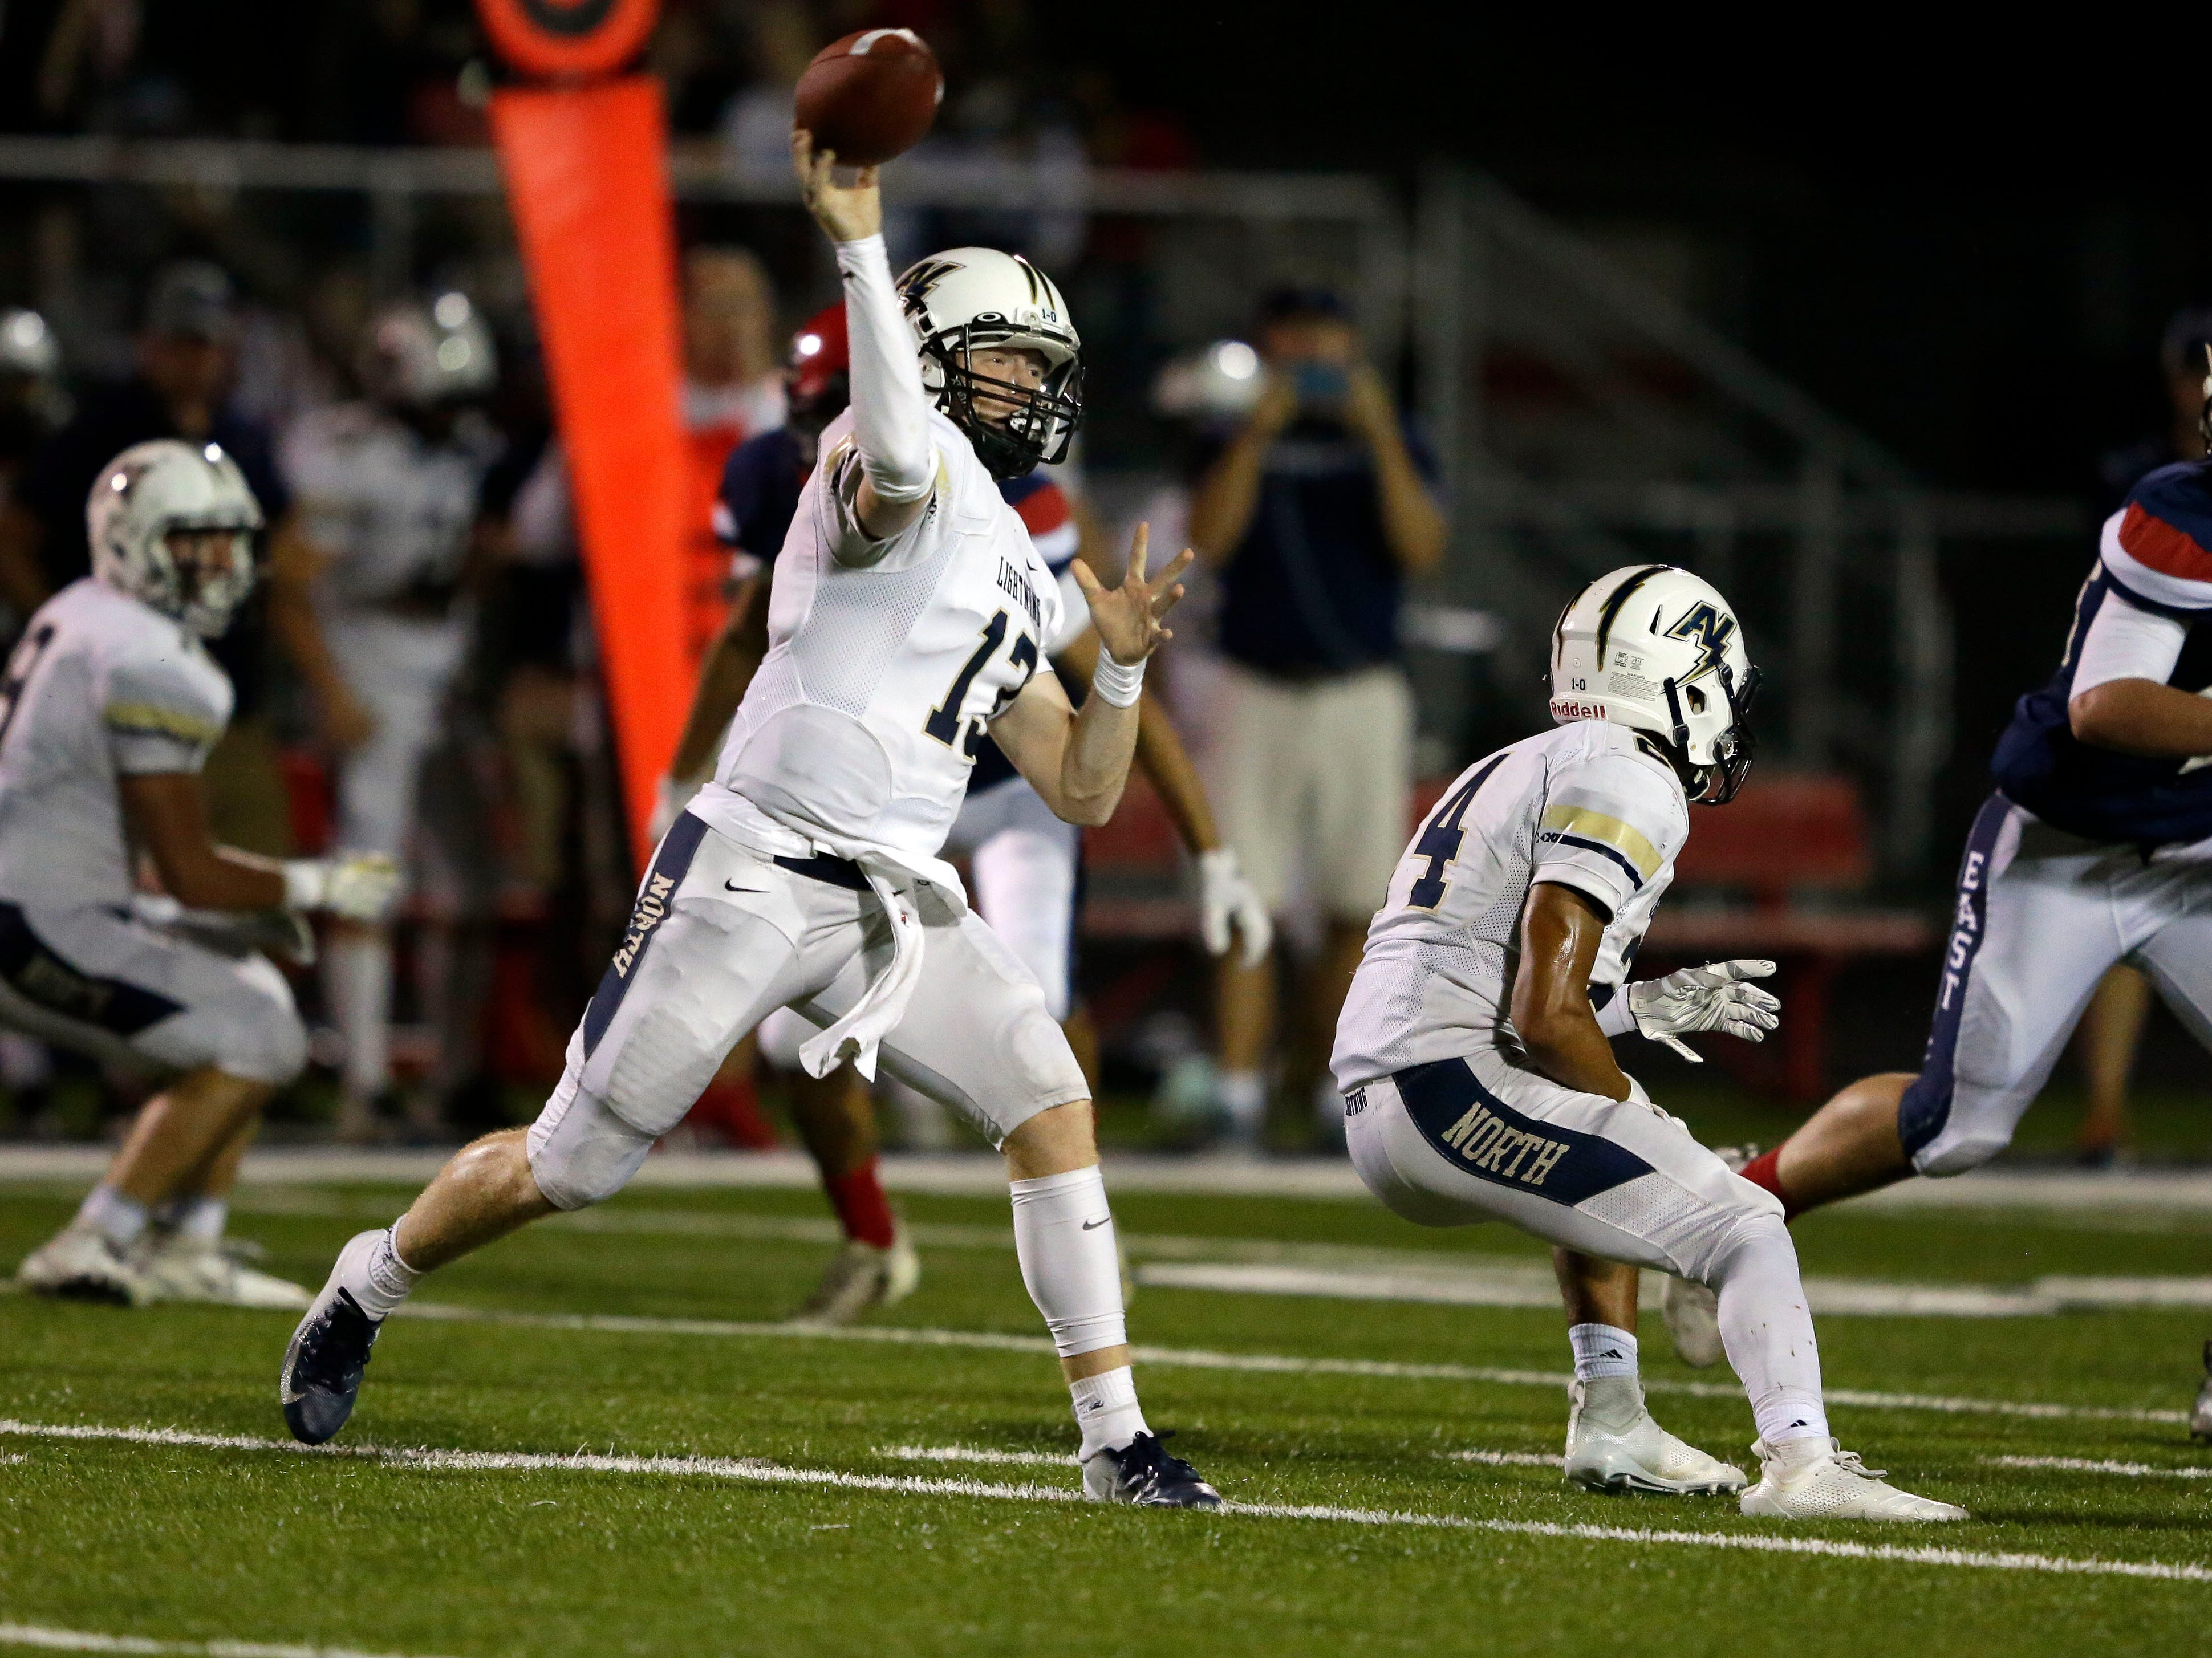 Carter Robinson of Appleton North passes against Appleton East in a Valley Football Association game Friday, September 14, 2018, at Appleton East High School in Appleton, Wis.Ron Page/USA TODAY NETWORK-Wisconsin